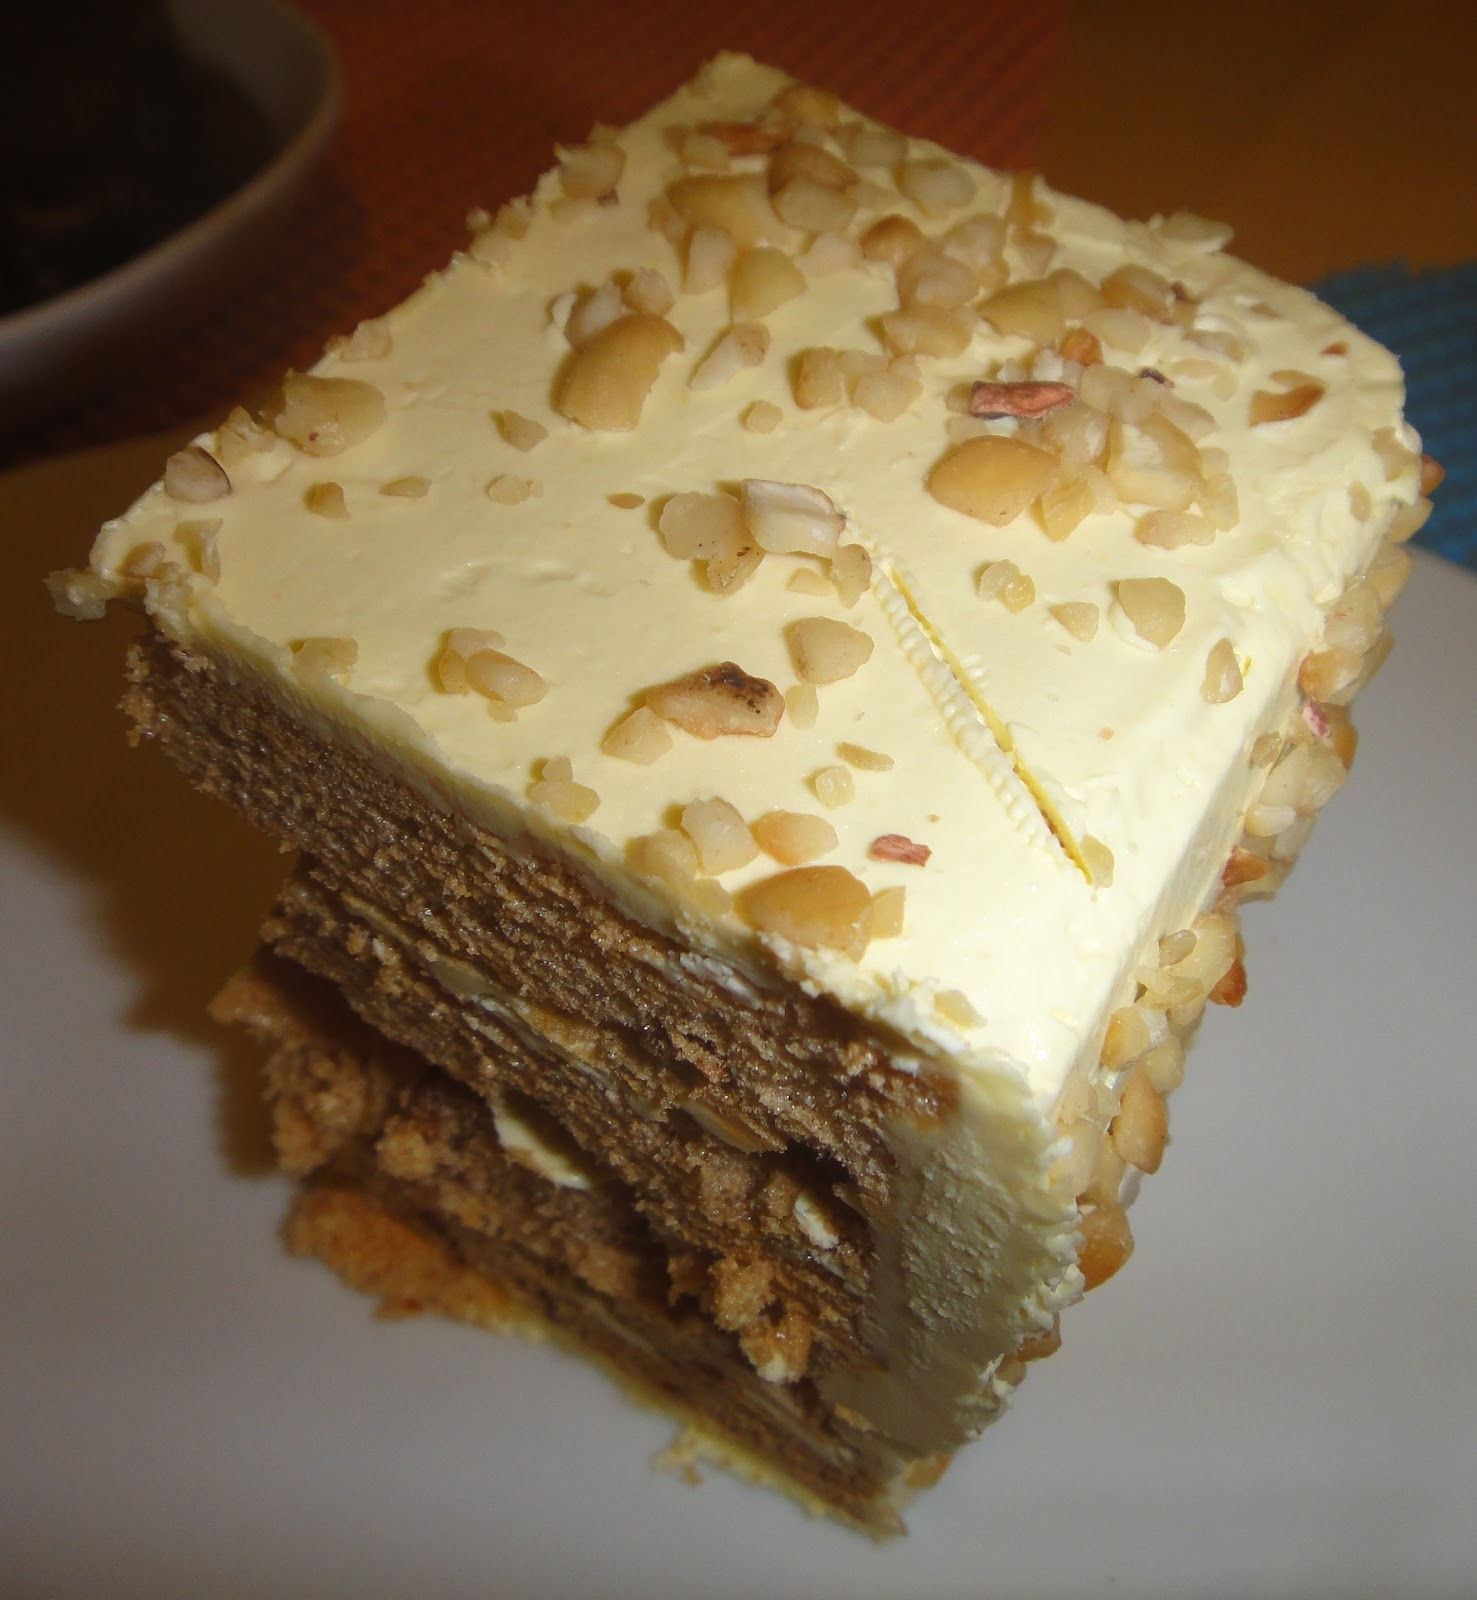 Lachi's Sans Rival and Desserts ~ So, how was it?